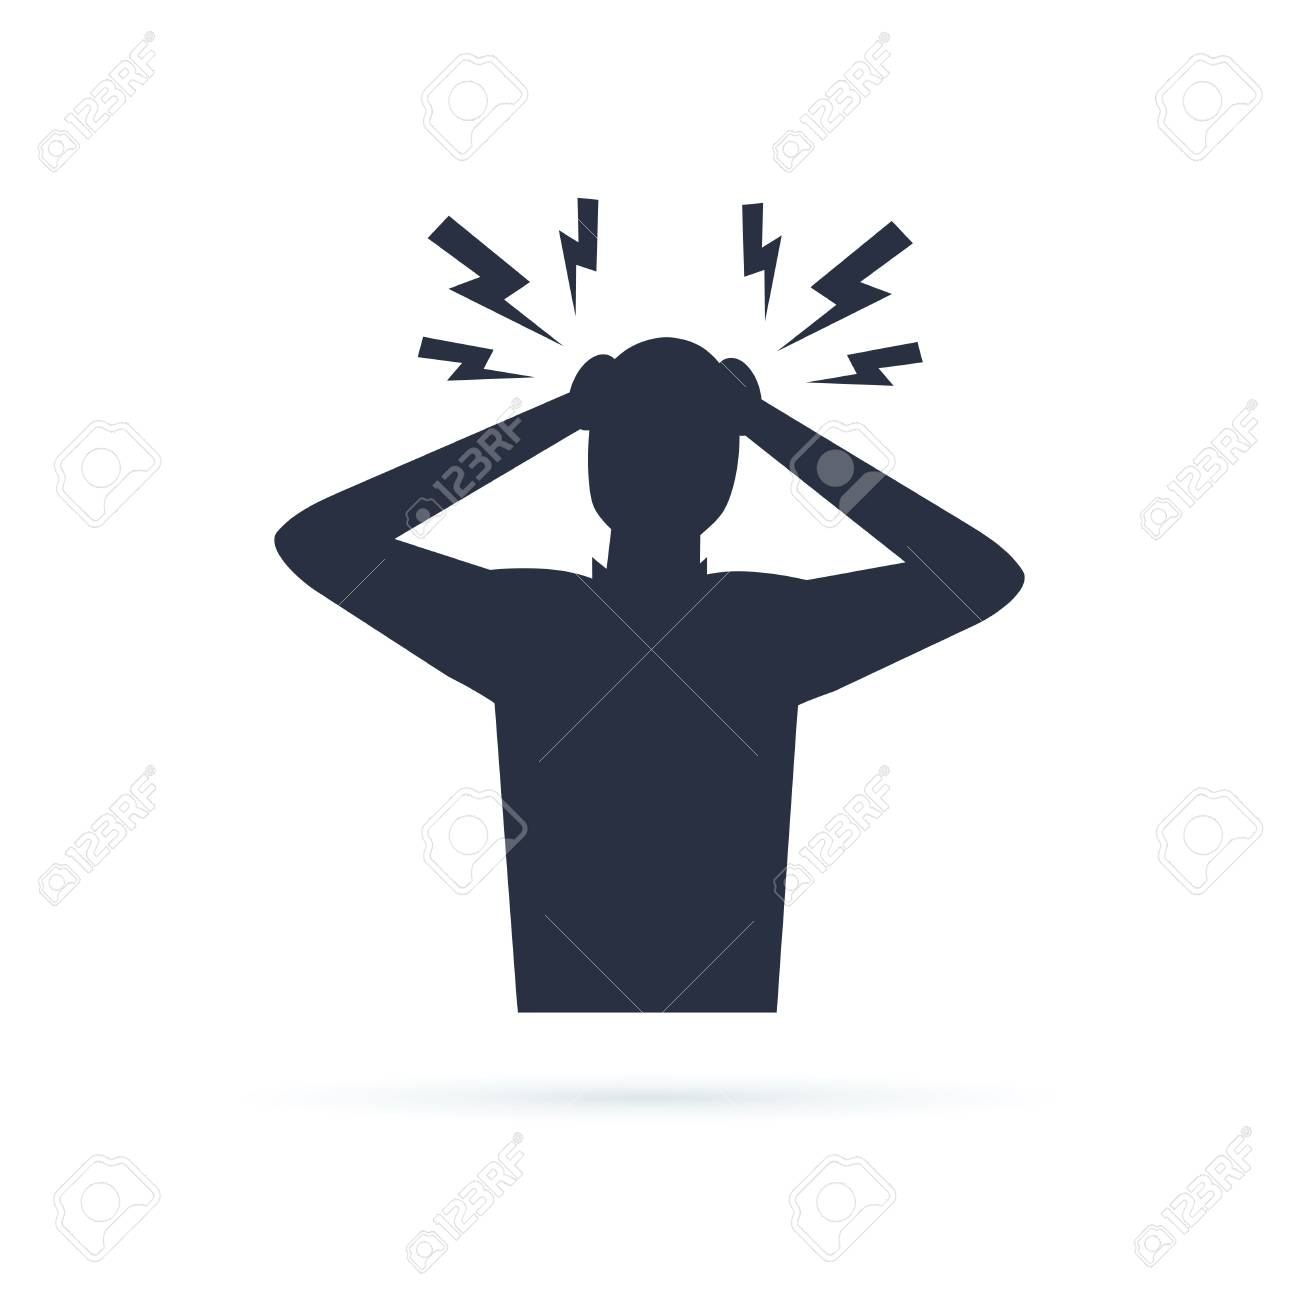 Headache glyph icon. Silhouette symbol. Anger and irritation. Frustration. Nervous tension. Aggression. Occupational stress. Emotional stress symptom. Negative space. Vector isolated illustration - 127315468